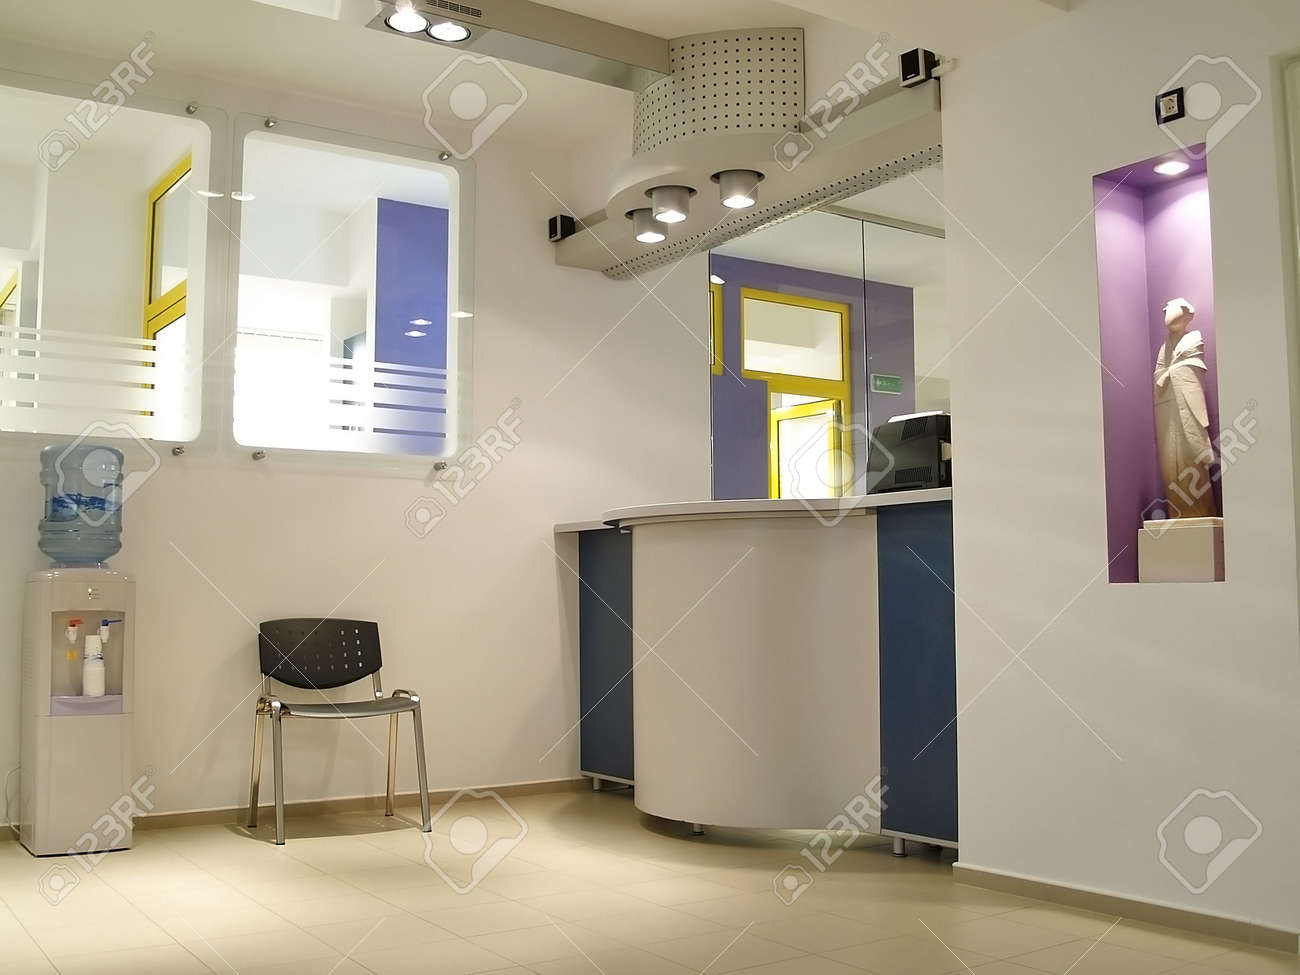 Aseptic Hospital Reception Bureau And Waiting Area Stock Photo